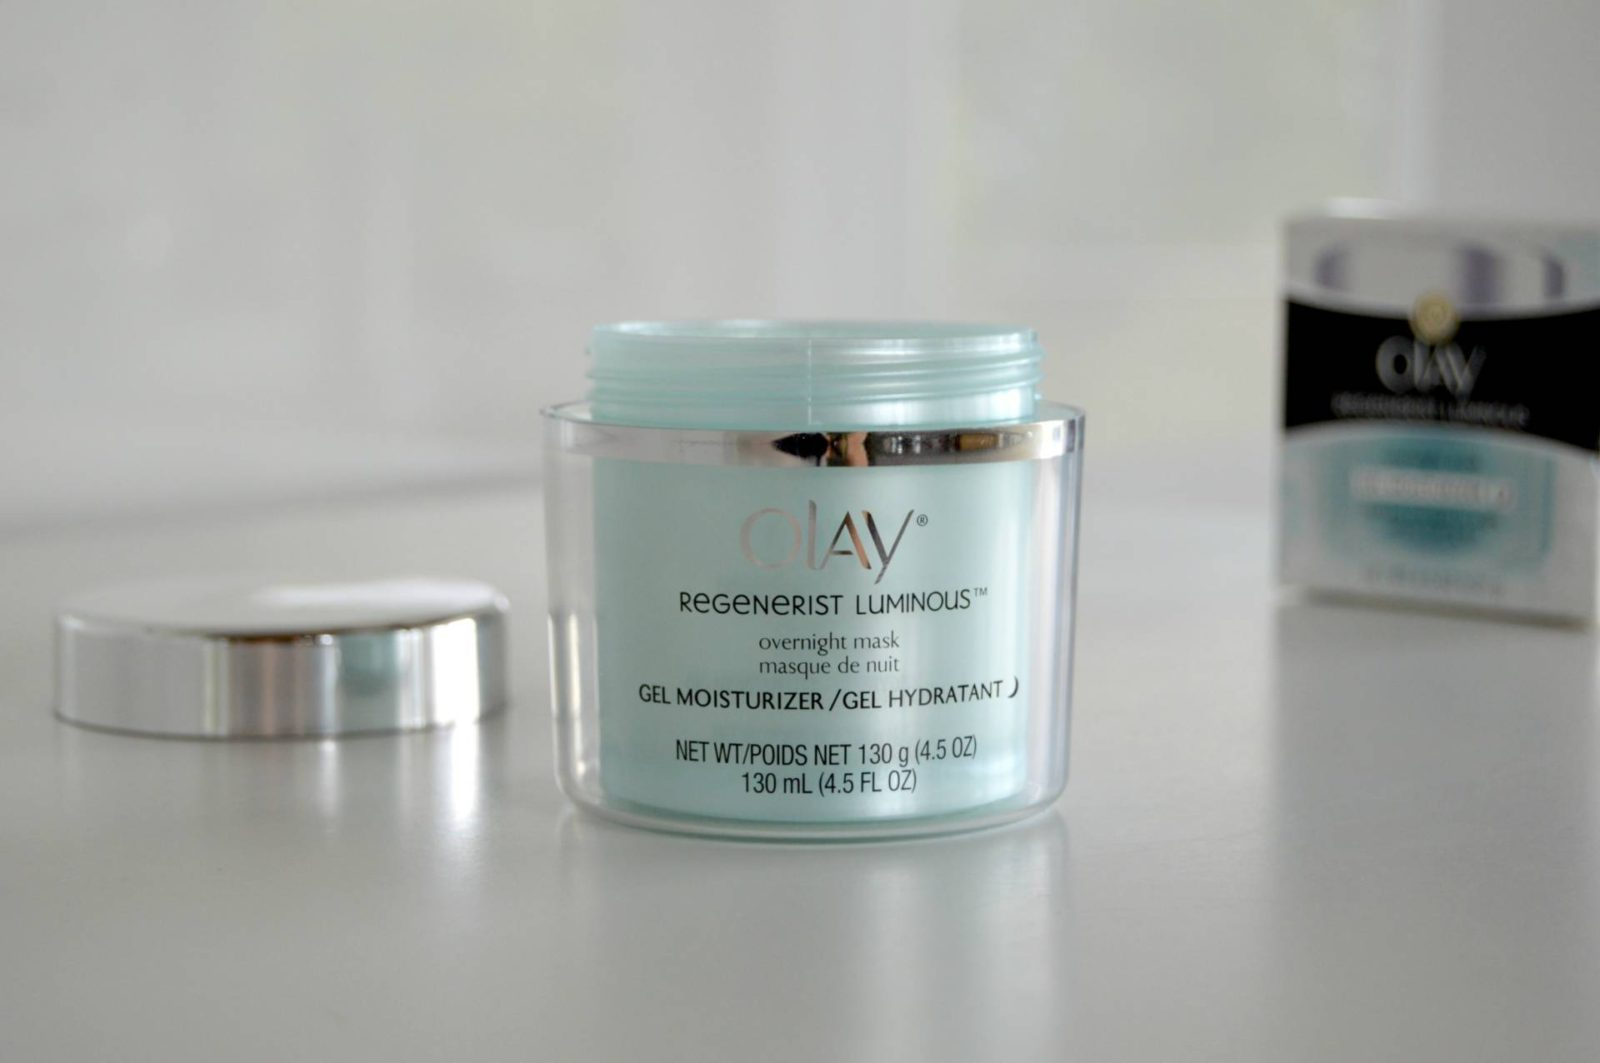 Drugstore Pick of the Summer: Olay Regenerist Luminous Overnight Mask